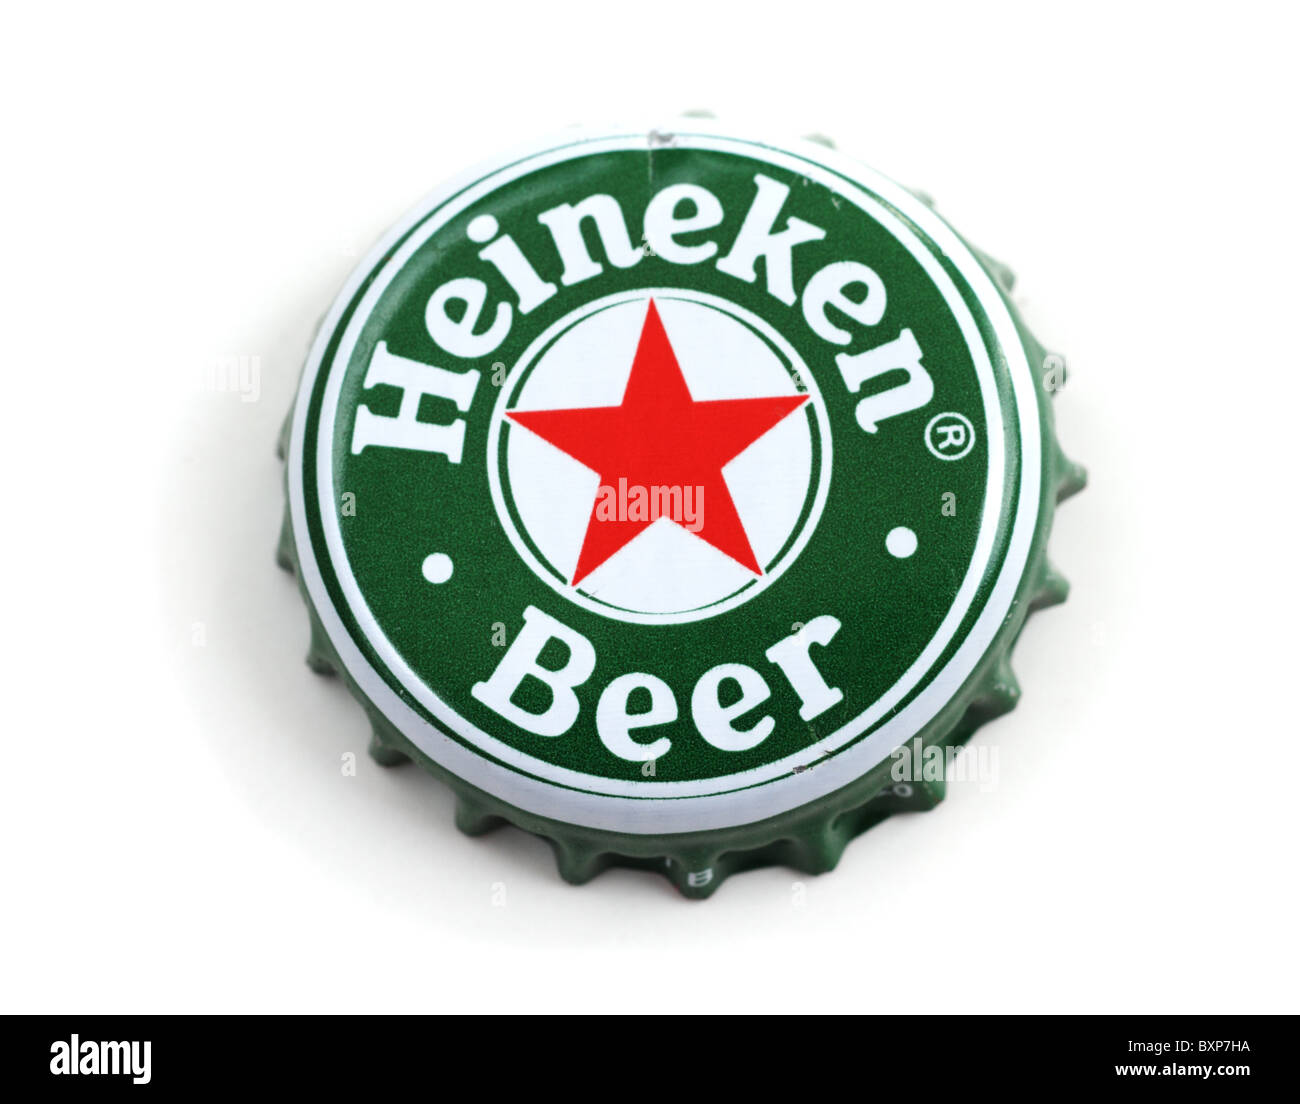 Heineken bottle cap on white background. Dutch brewing company. Stock Photo